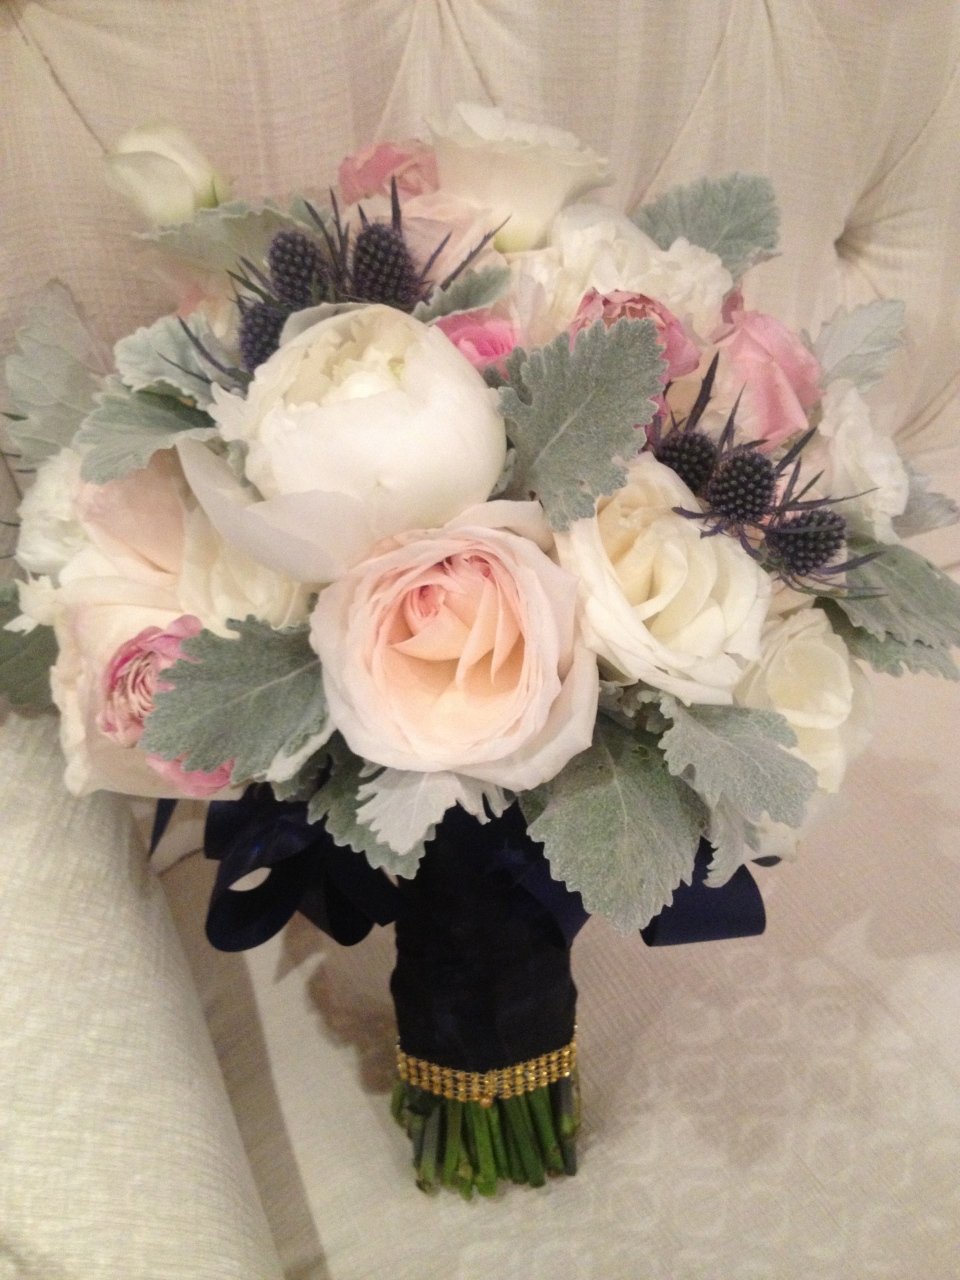 Bouquet peonies, garden roses, roses, spray roses, thistle and dusty miller.